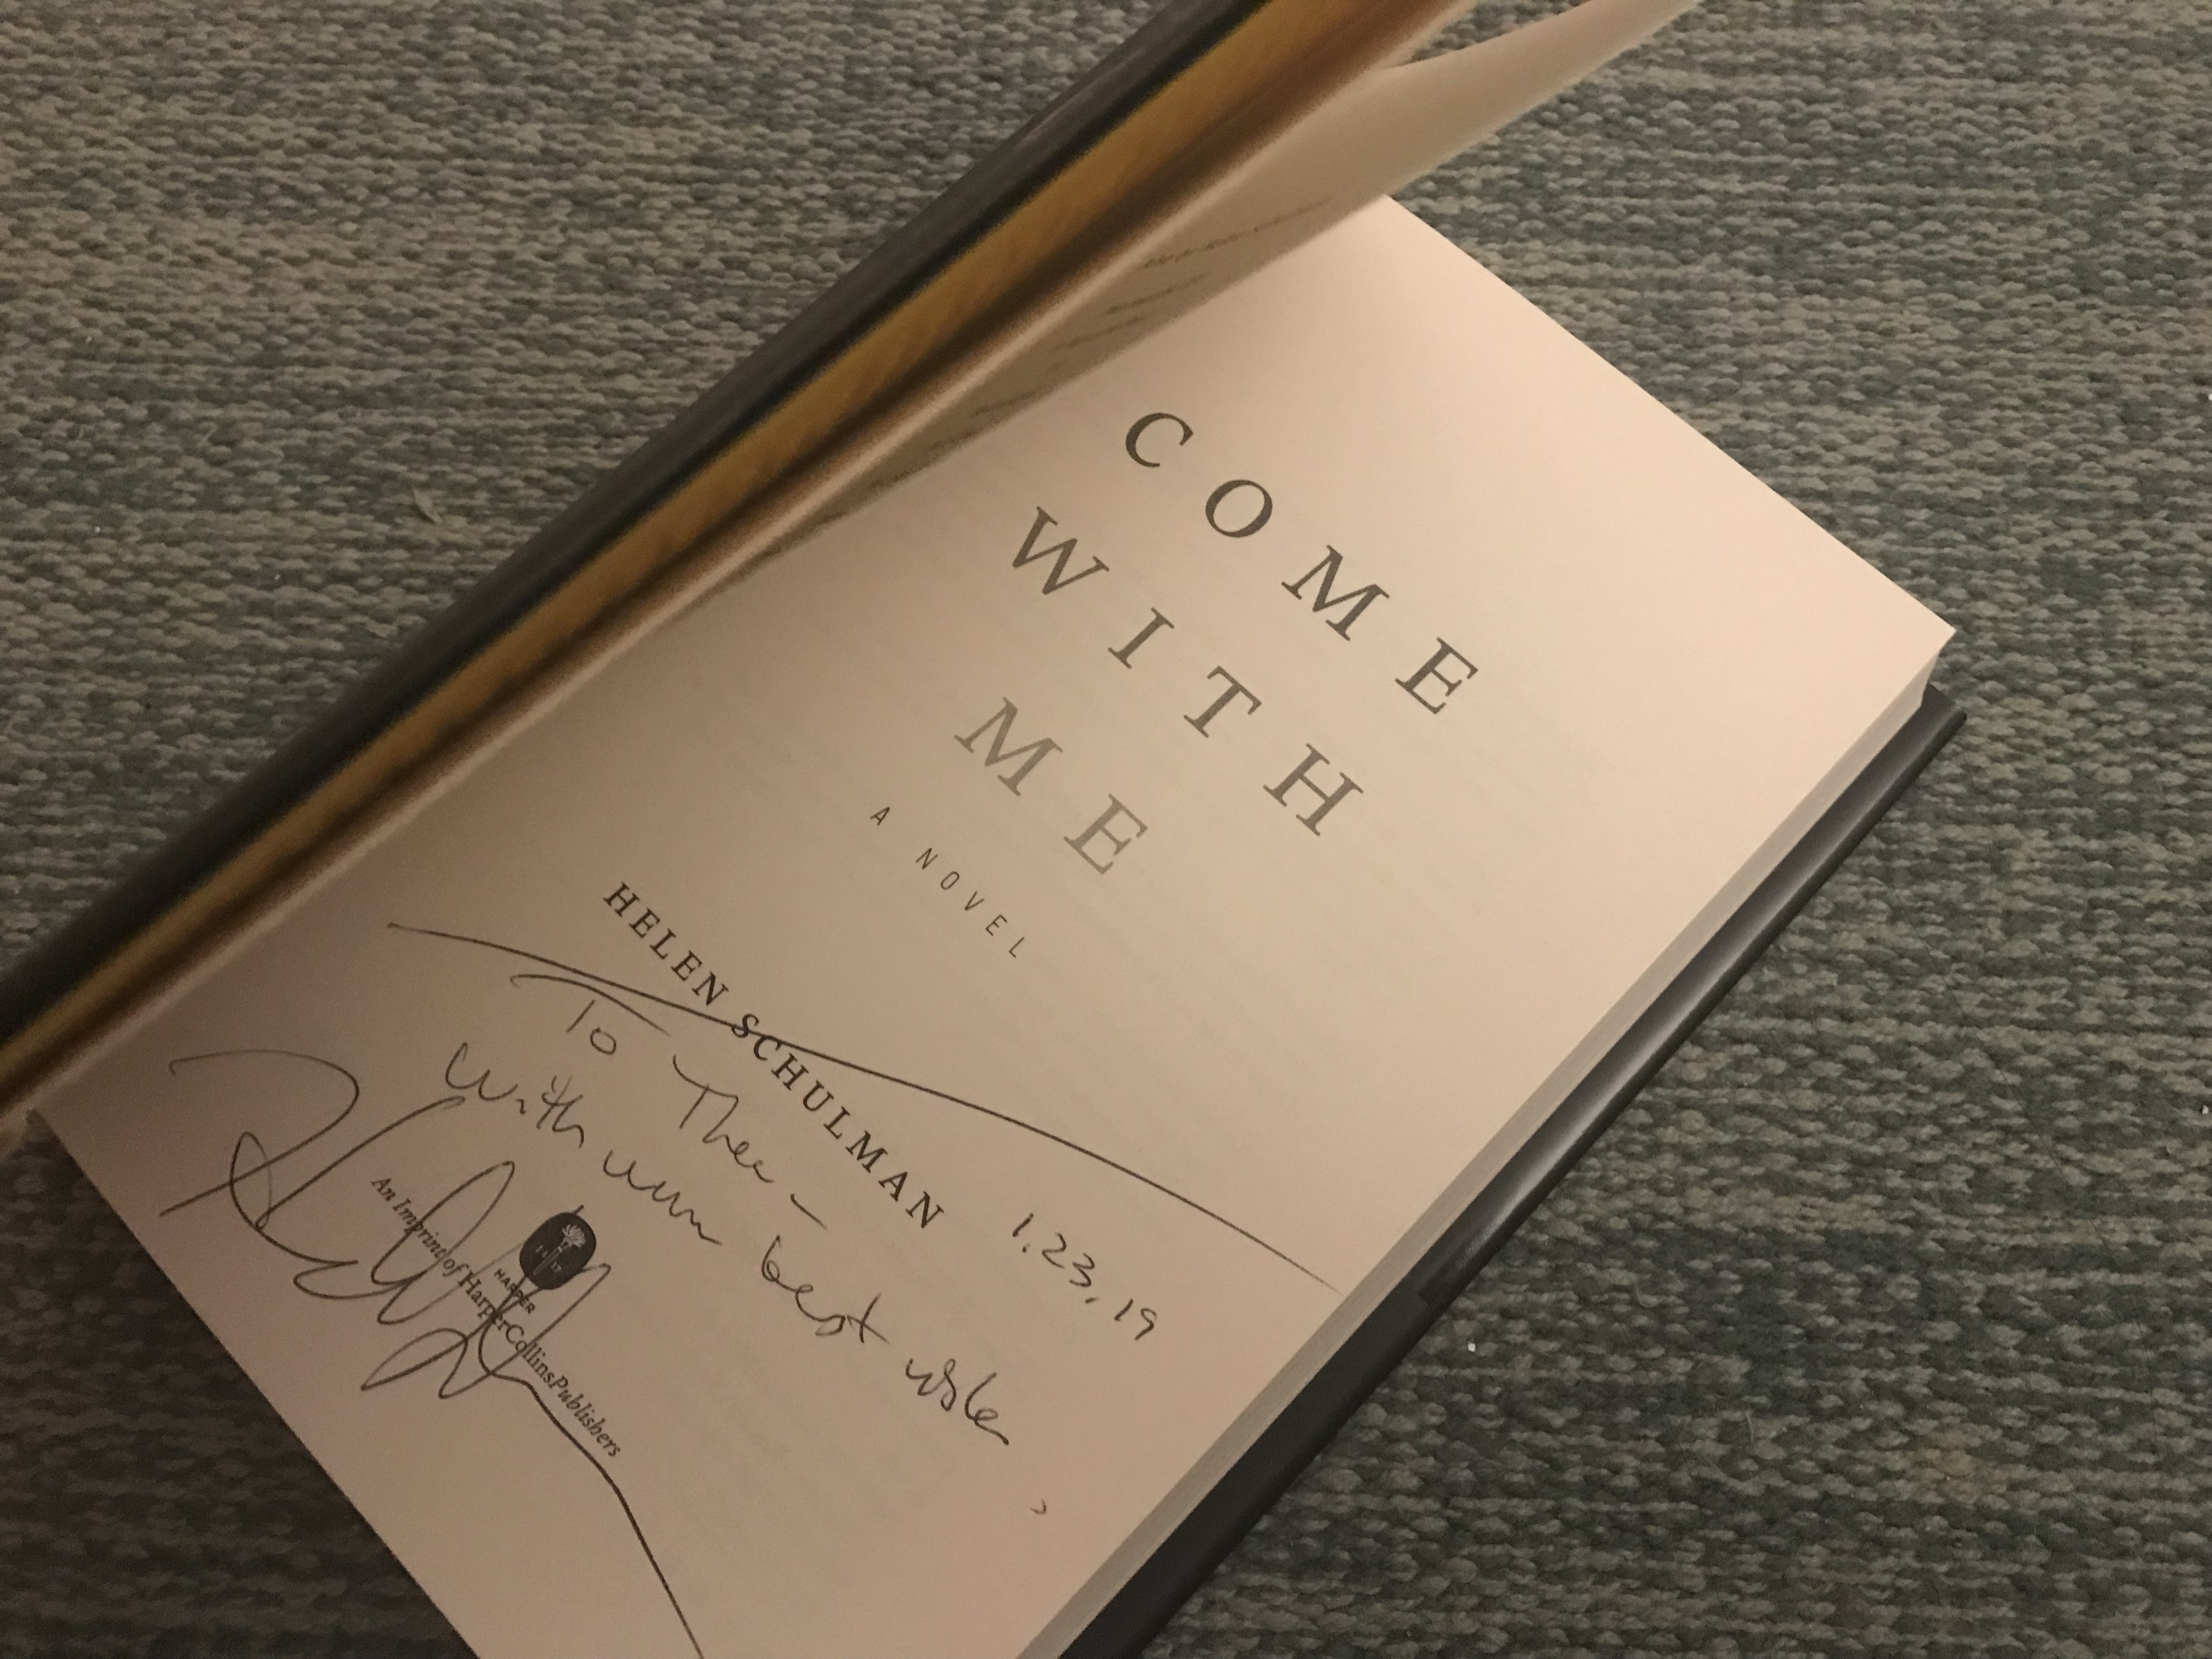 Helen Schulman, author of Come with Me, autographed a copy of her novel for Thea Toocheck '21 (Photo Thea Toocheck/The Gettysburgian).